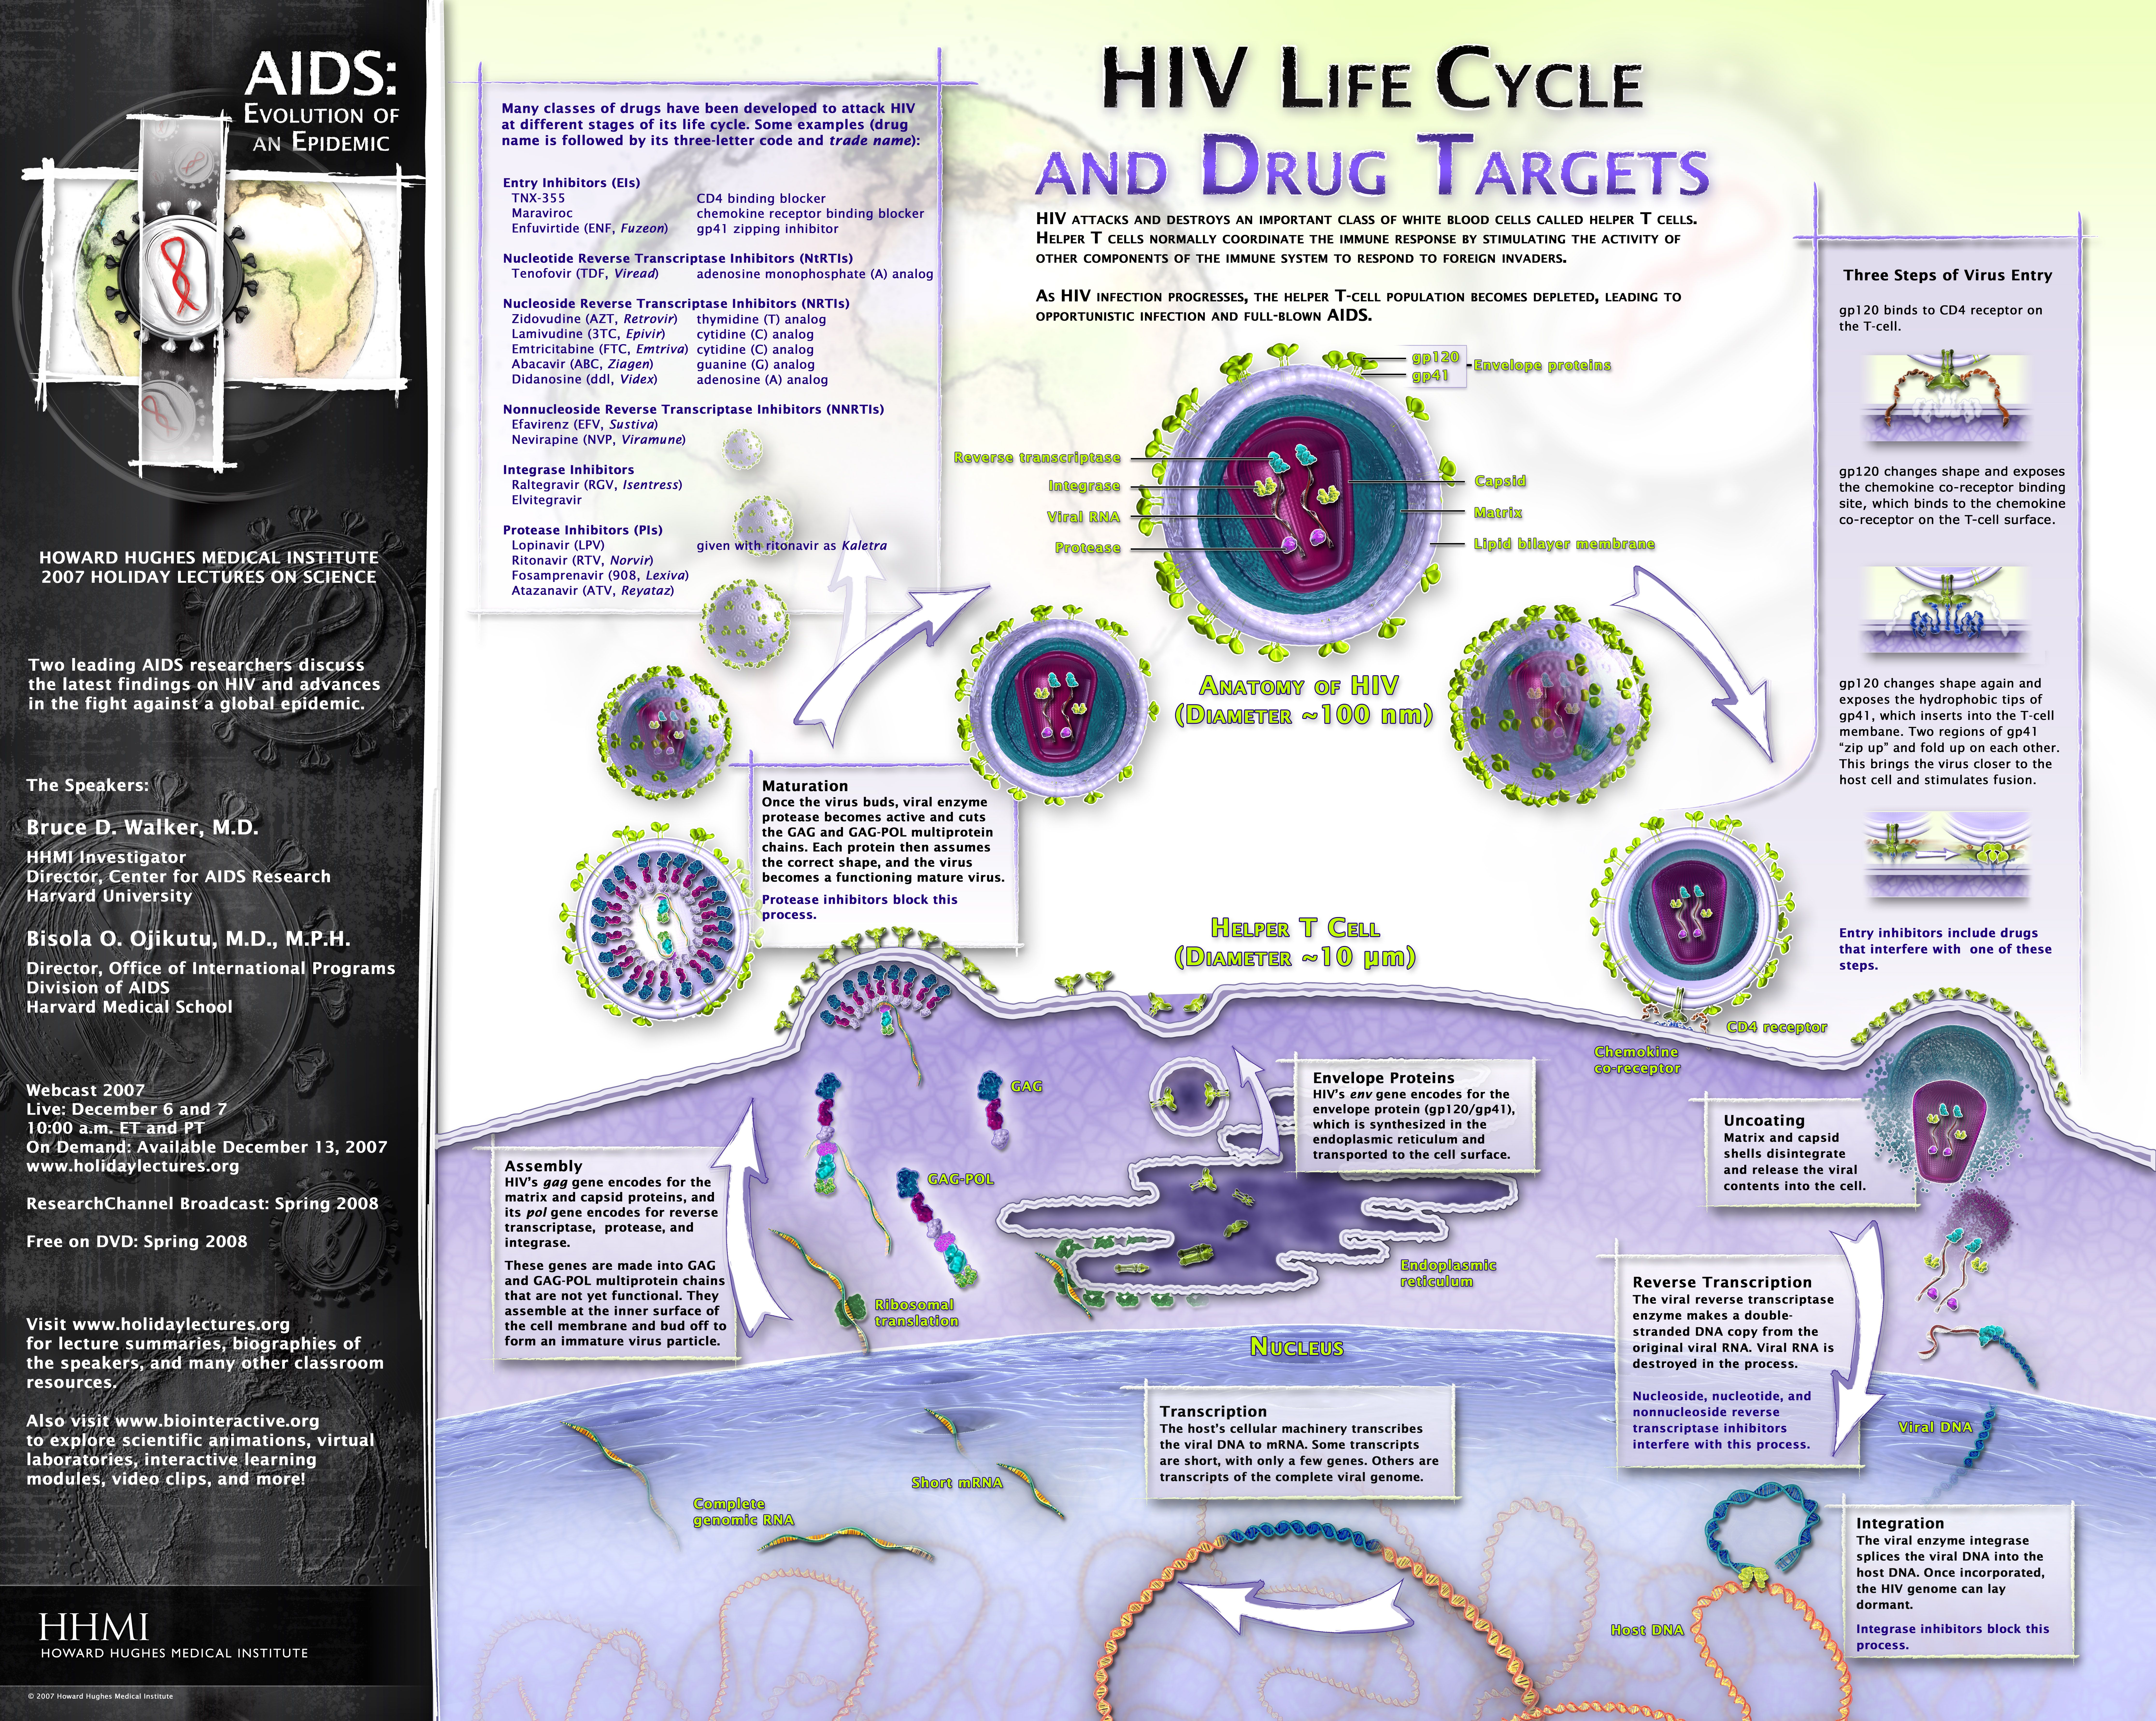 HIV Life Cycle and Drug Targets Poster/Graphic - AIDS: Evolution of ...